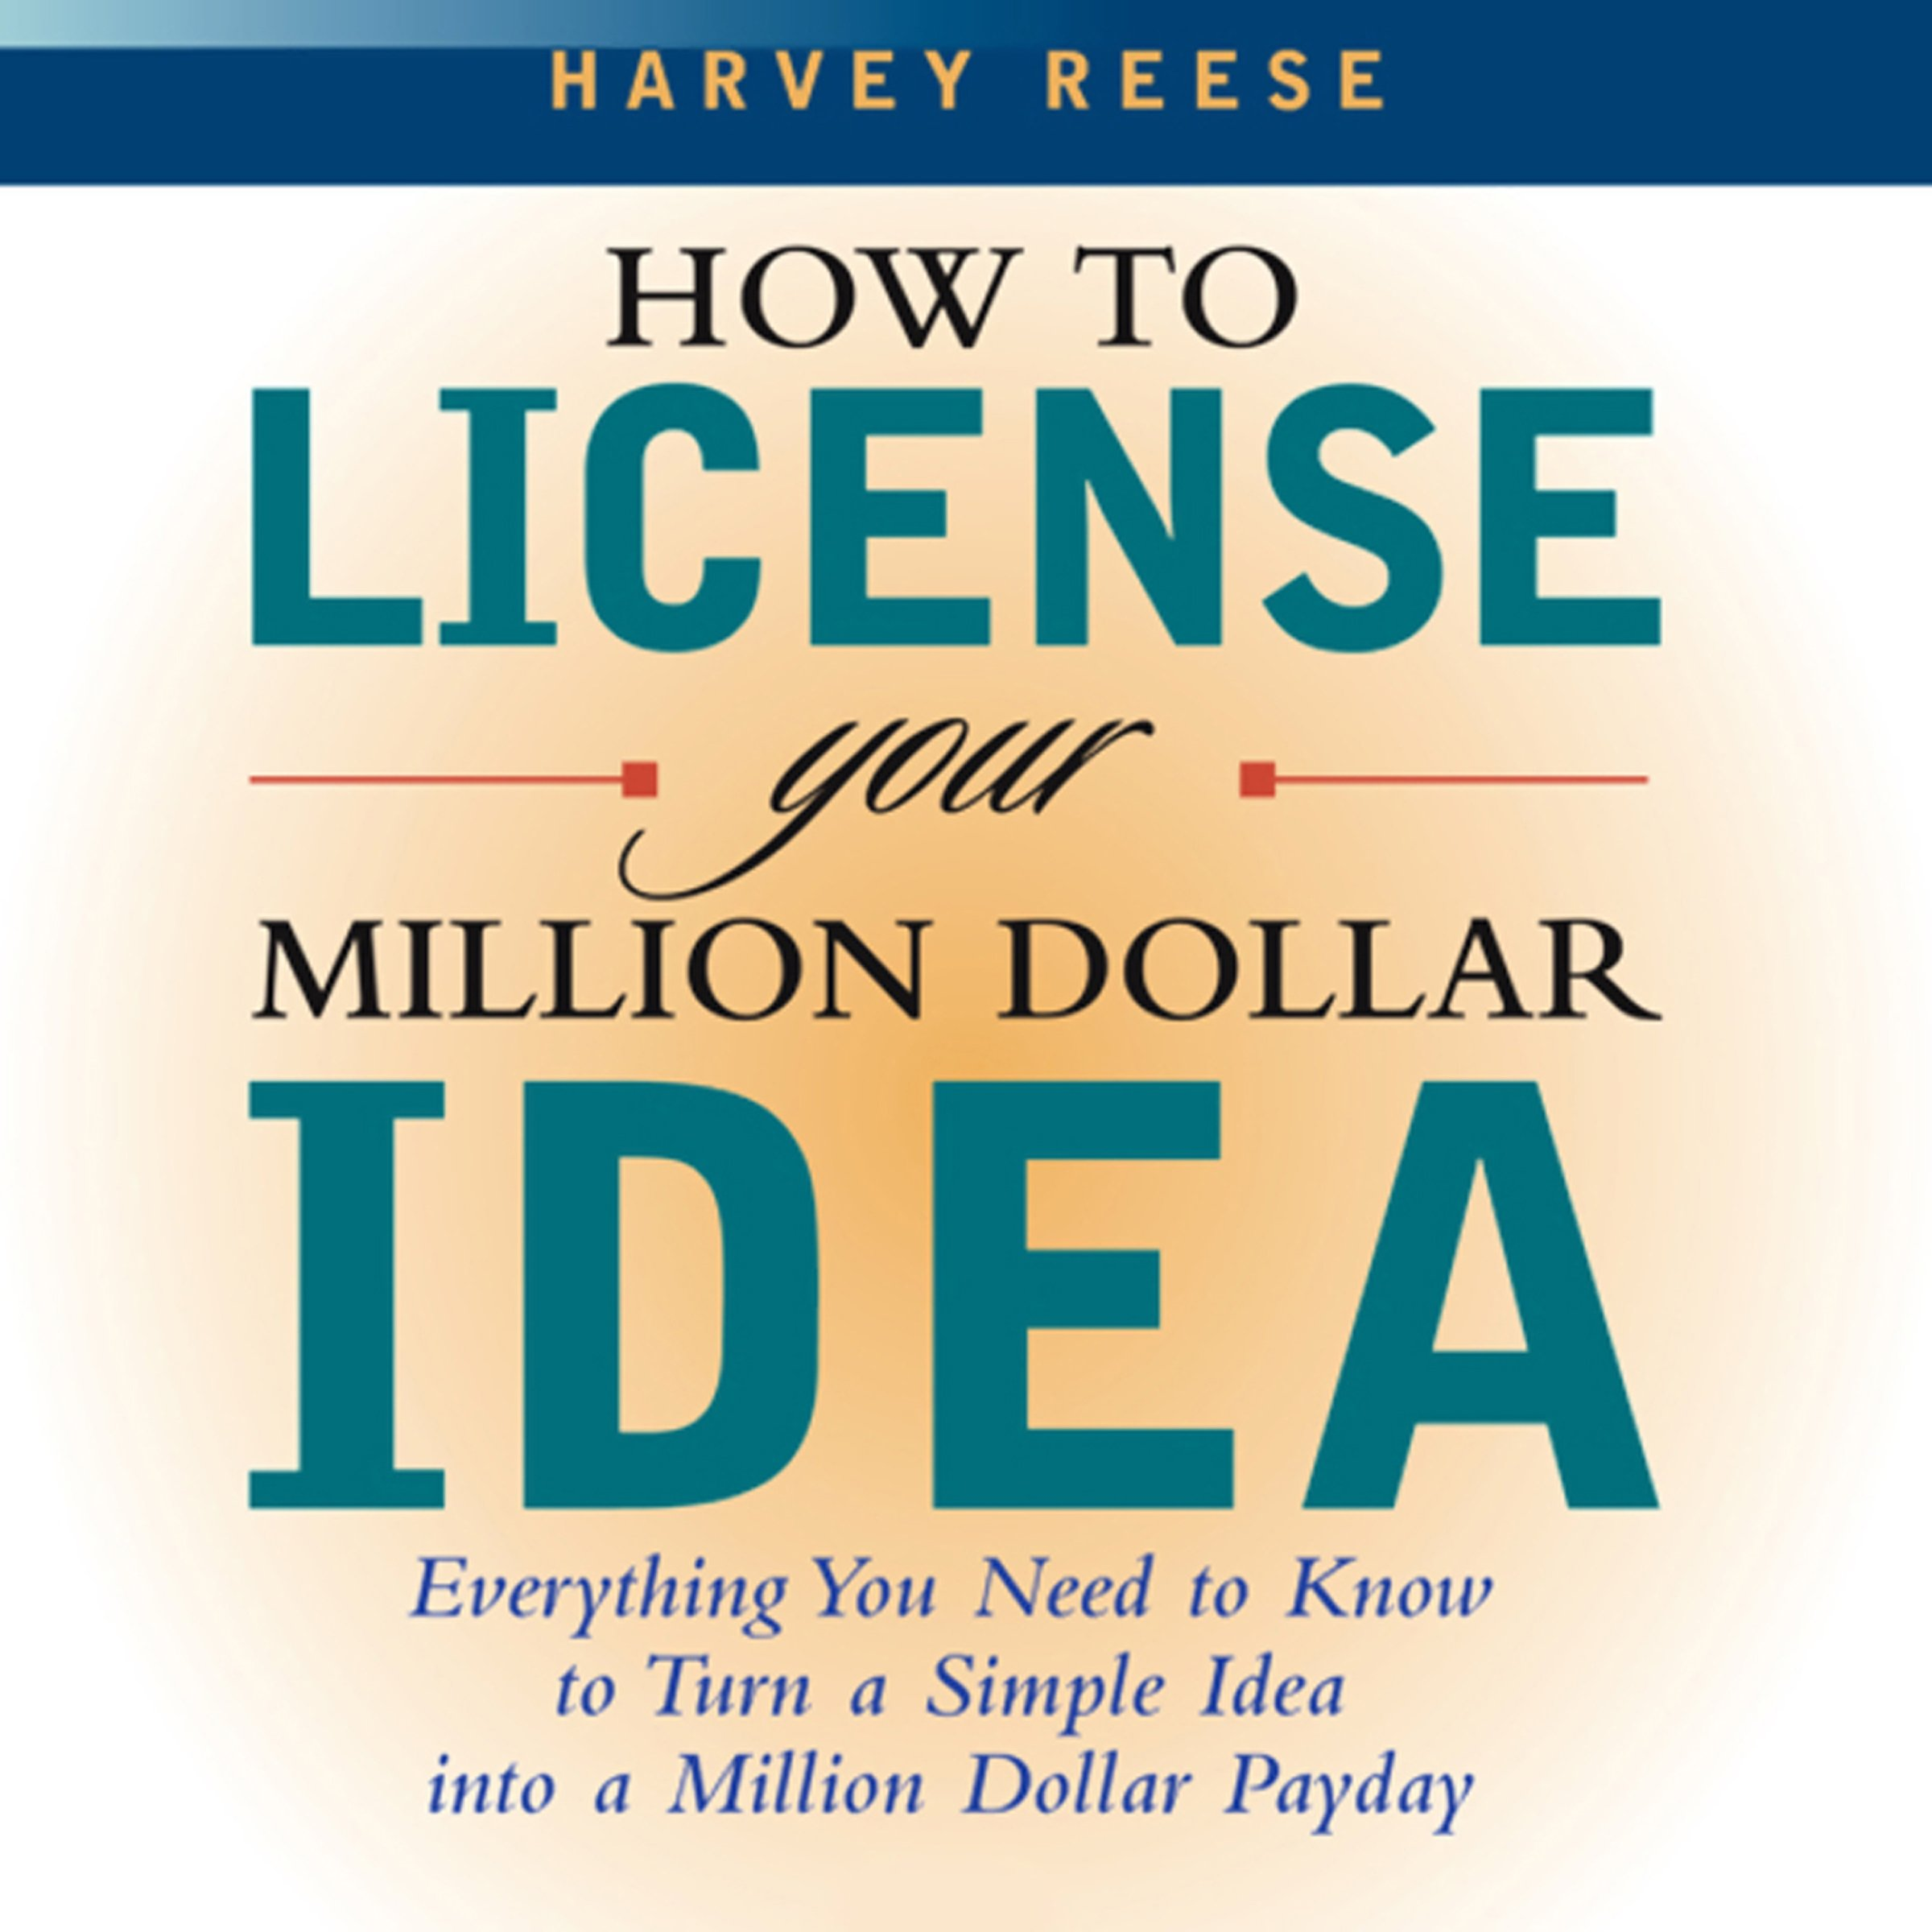 How to License Your Million Dollar Idea